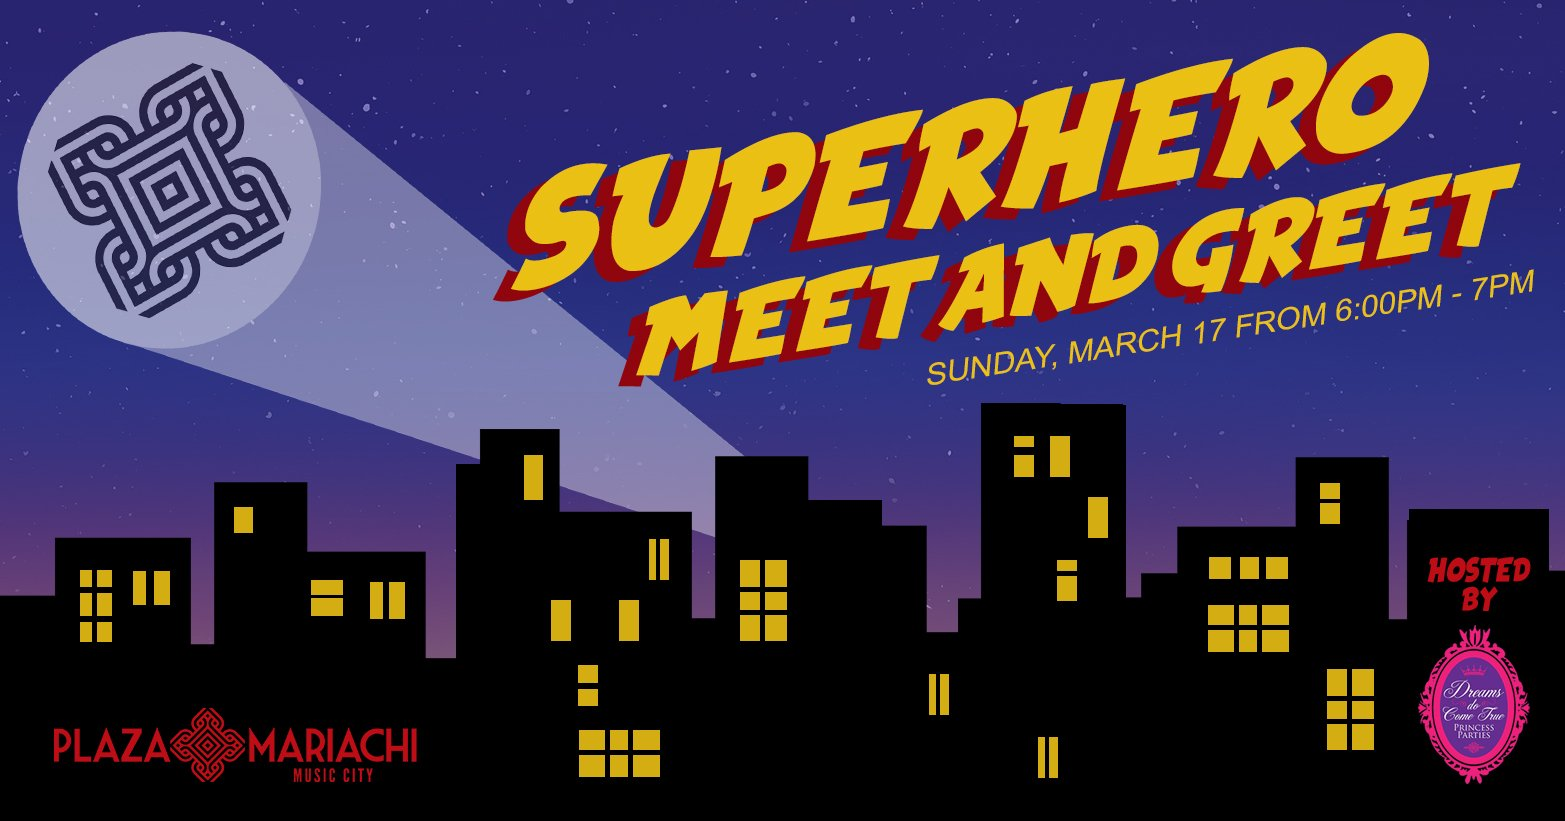 Superhero meet and greet